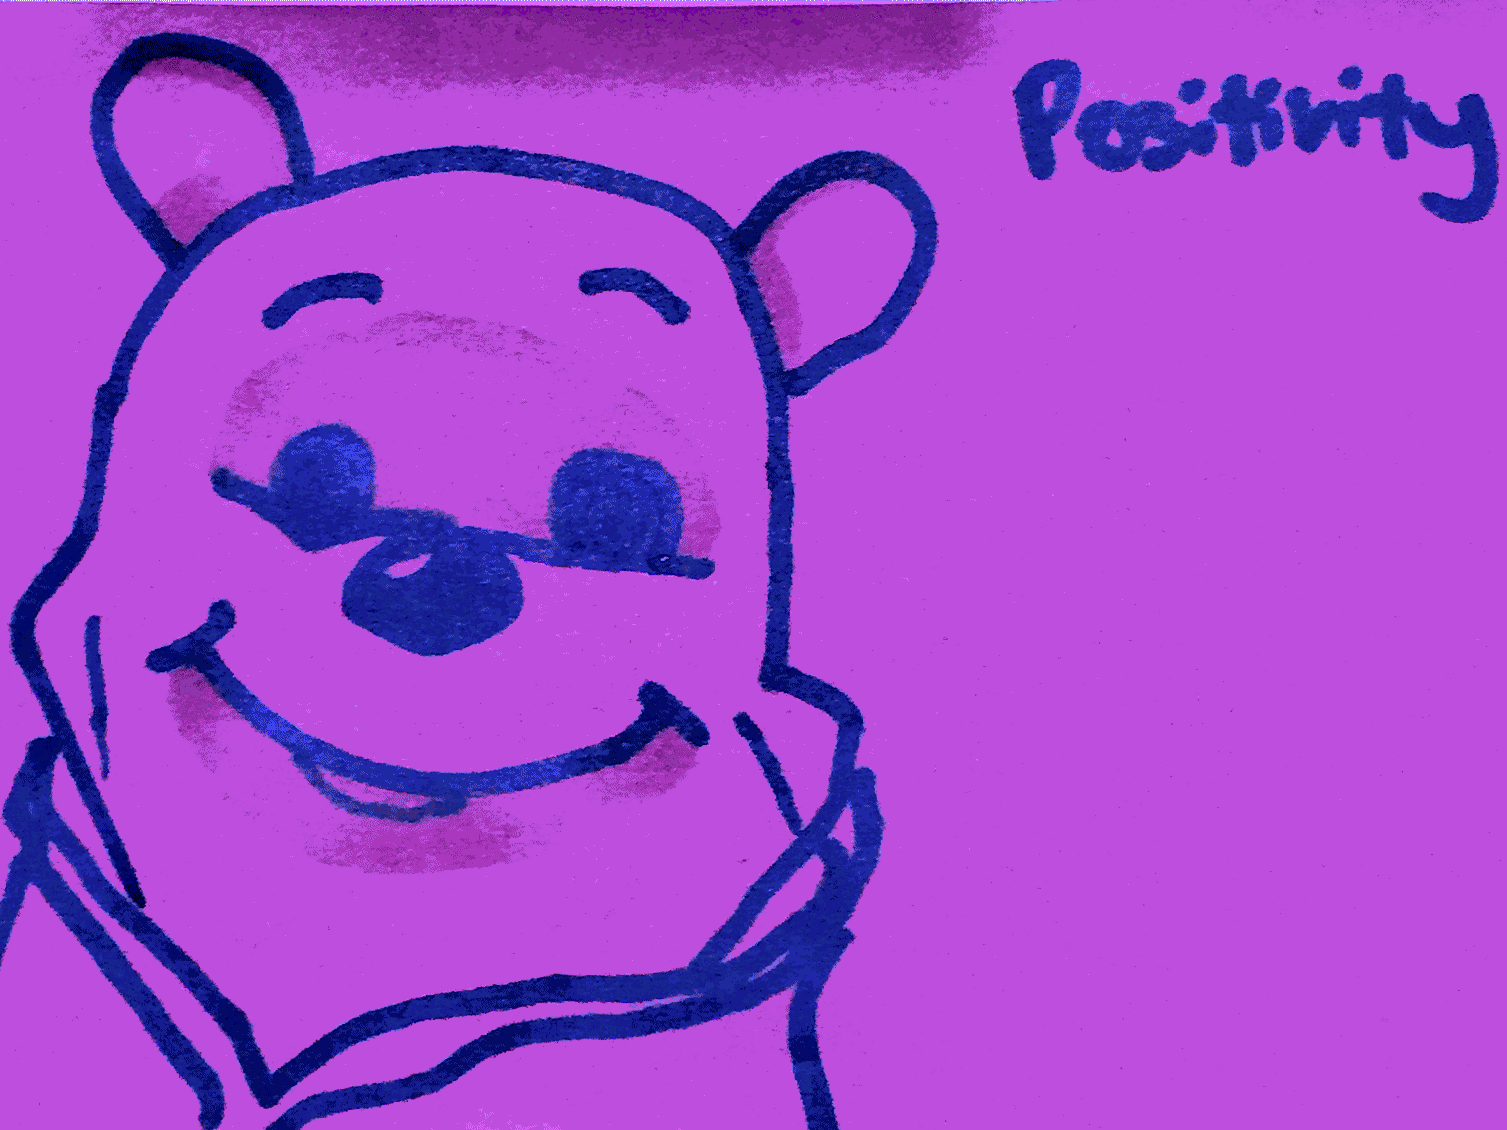 Positivity StrengthsFinder Singapore Happy Pooh Bear